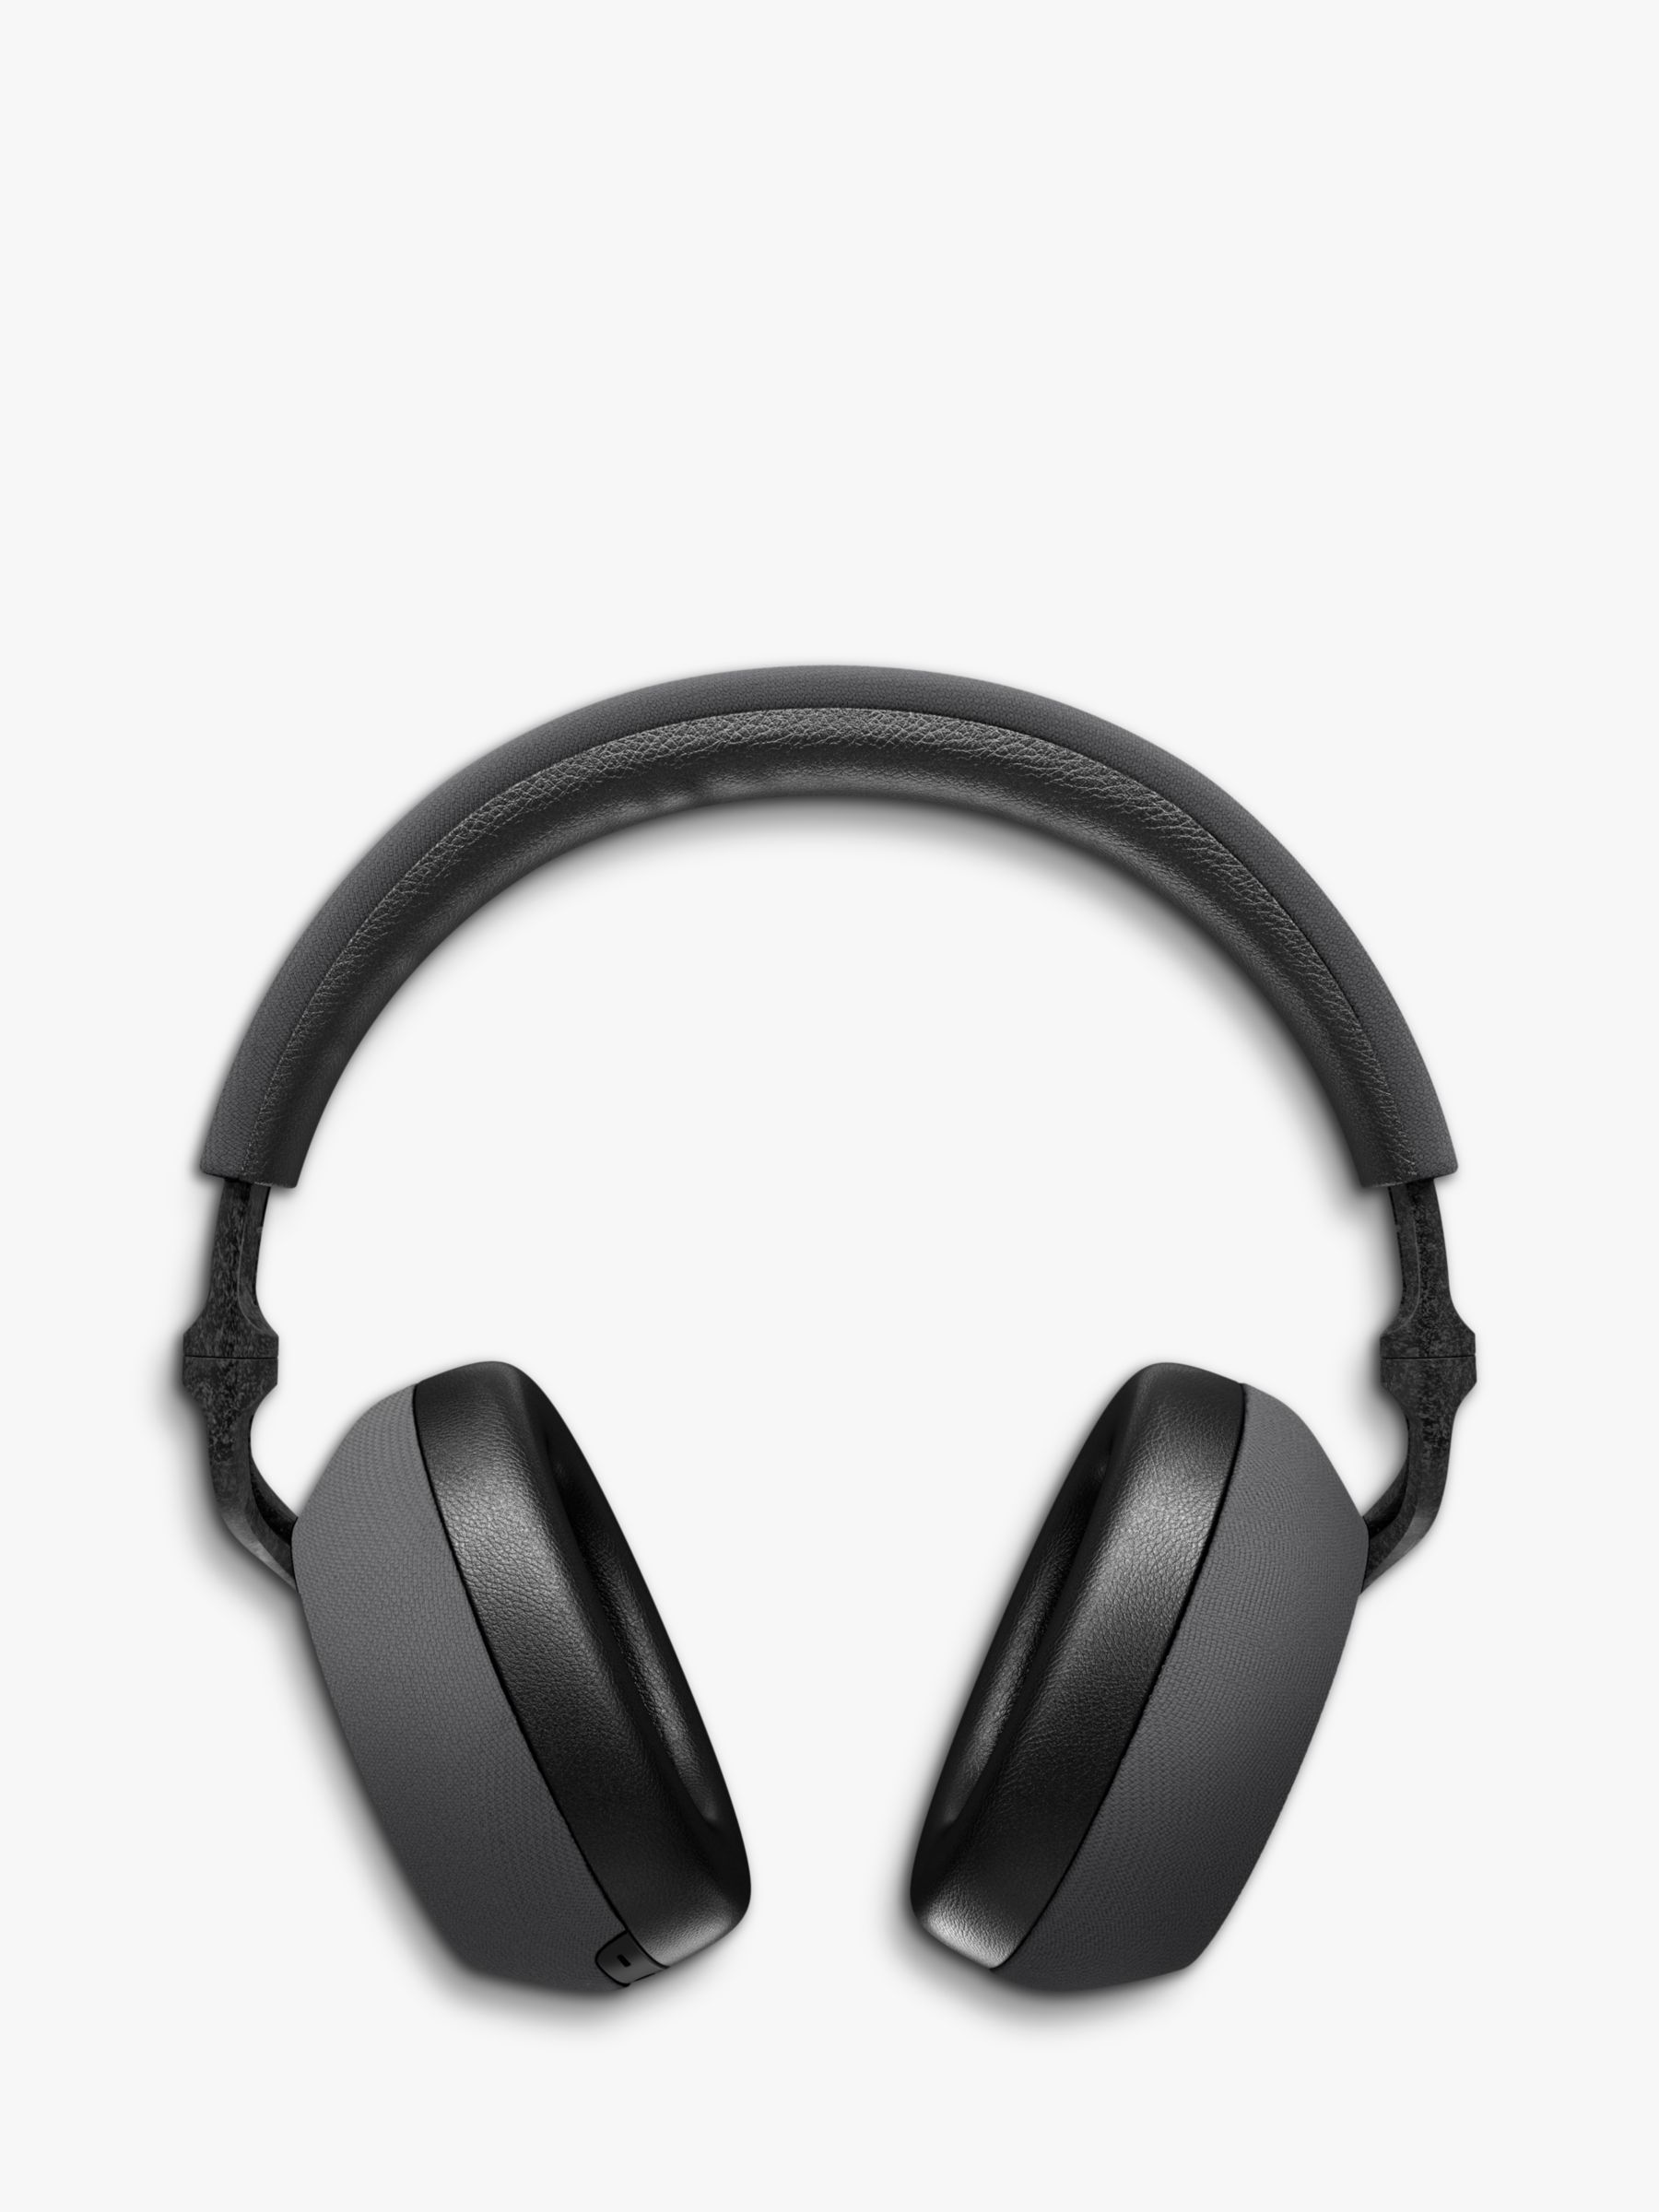 Bowers & Wilkins Bowers & Wilkins PX7 Noise Cancelling Wireless Over Ear Headphones, Space Grey